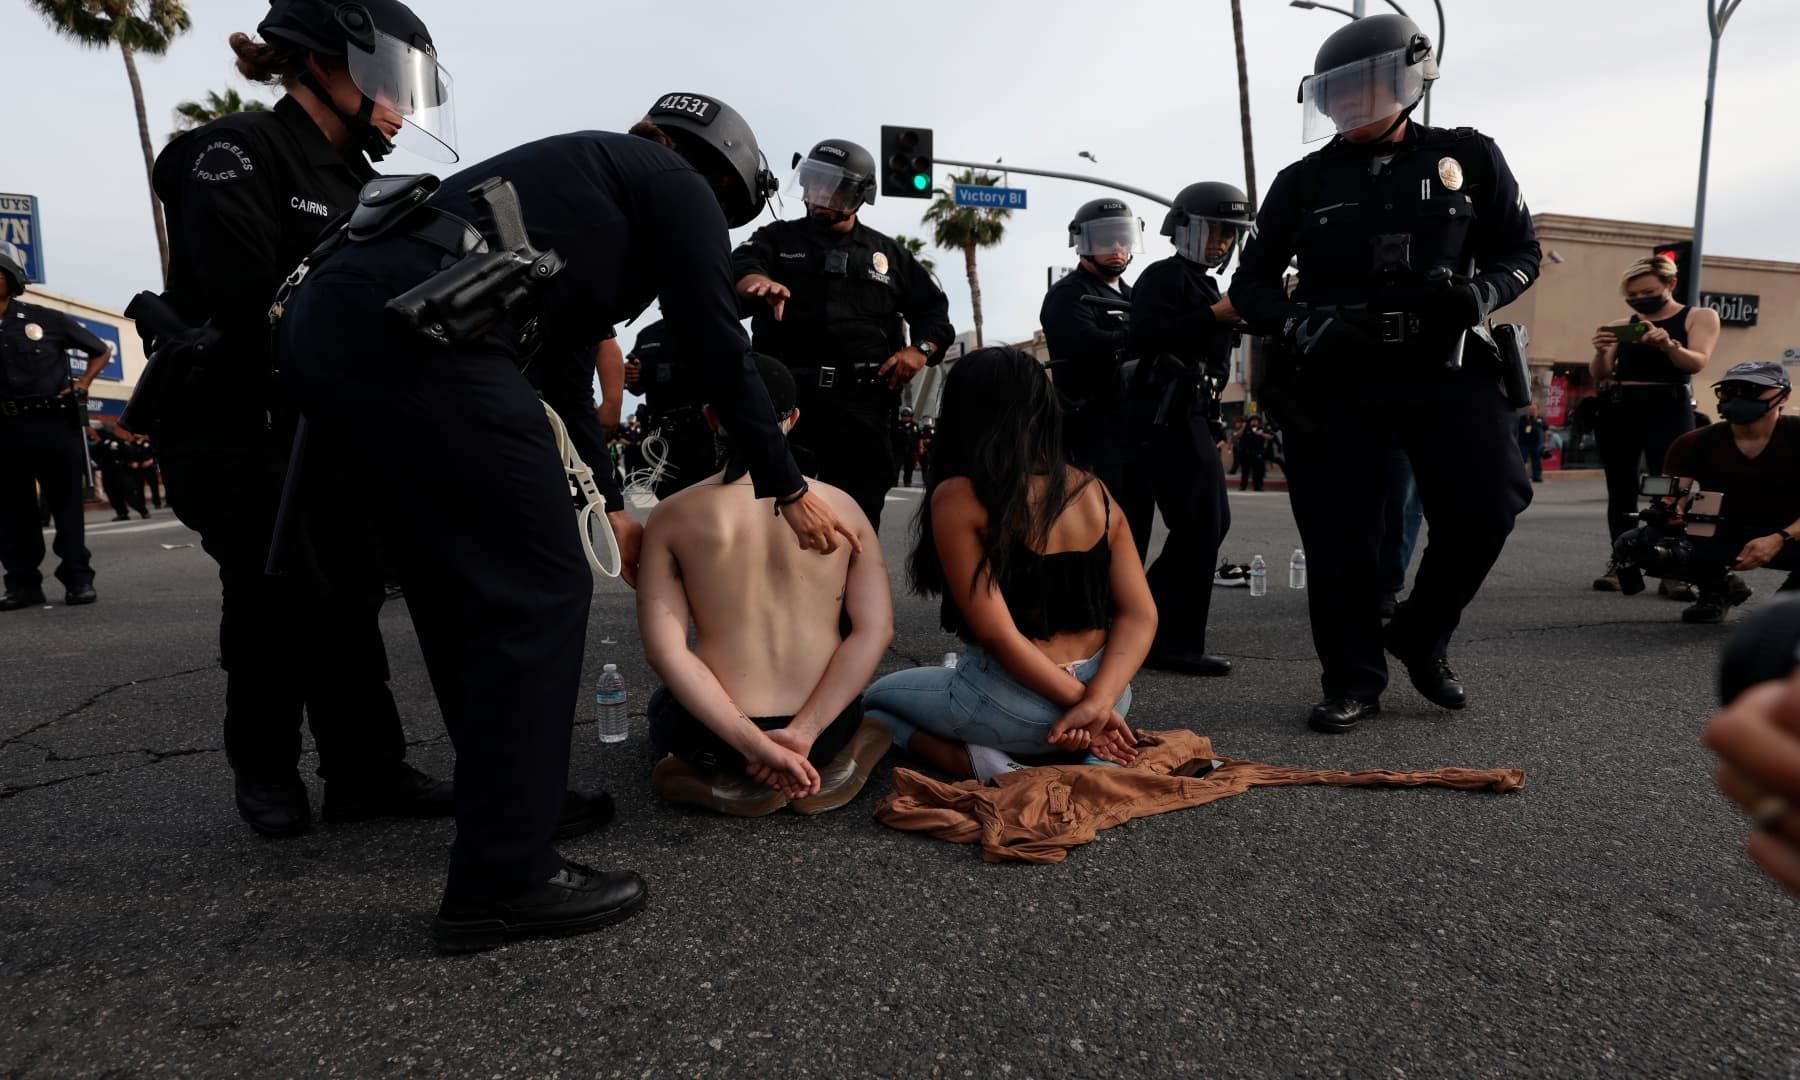 Television personality, Kai Wes, left, and college student, Wendy Chavez, right, are arrested for violating a county-wide curfew at a protest in Van Nuys,  on June 1, 2020. — AP